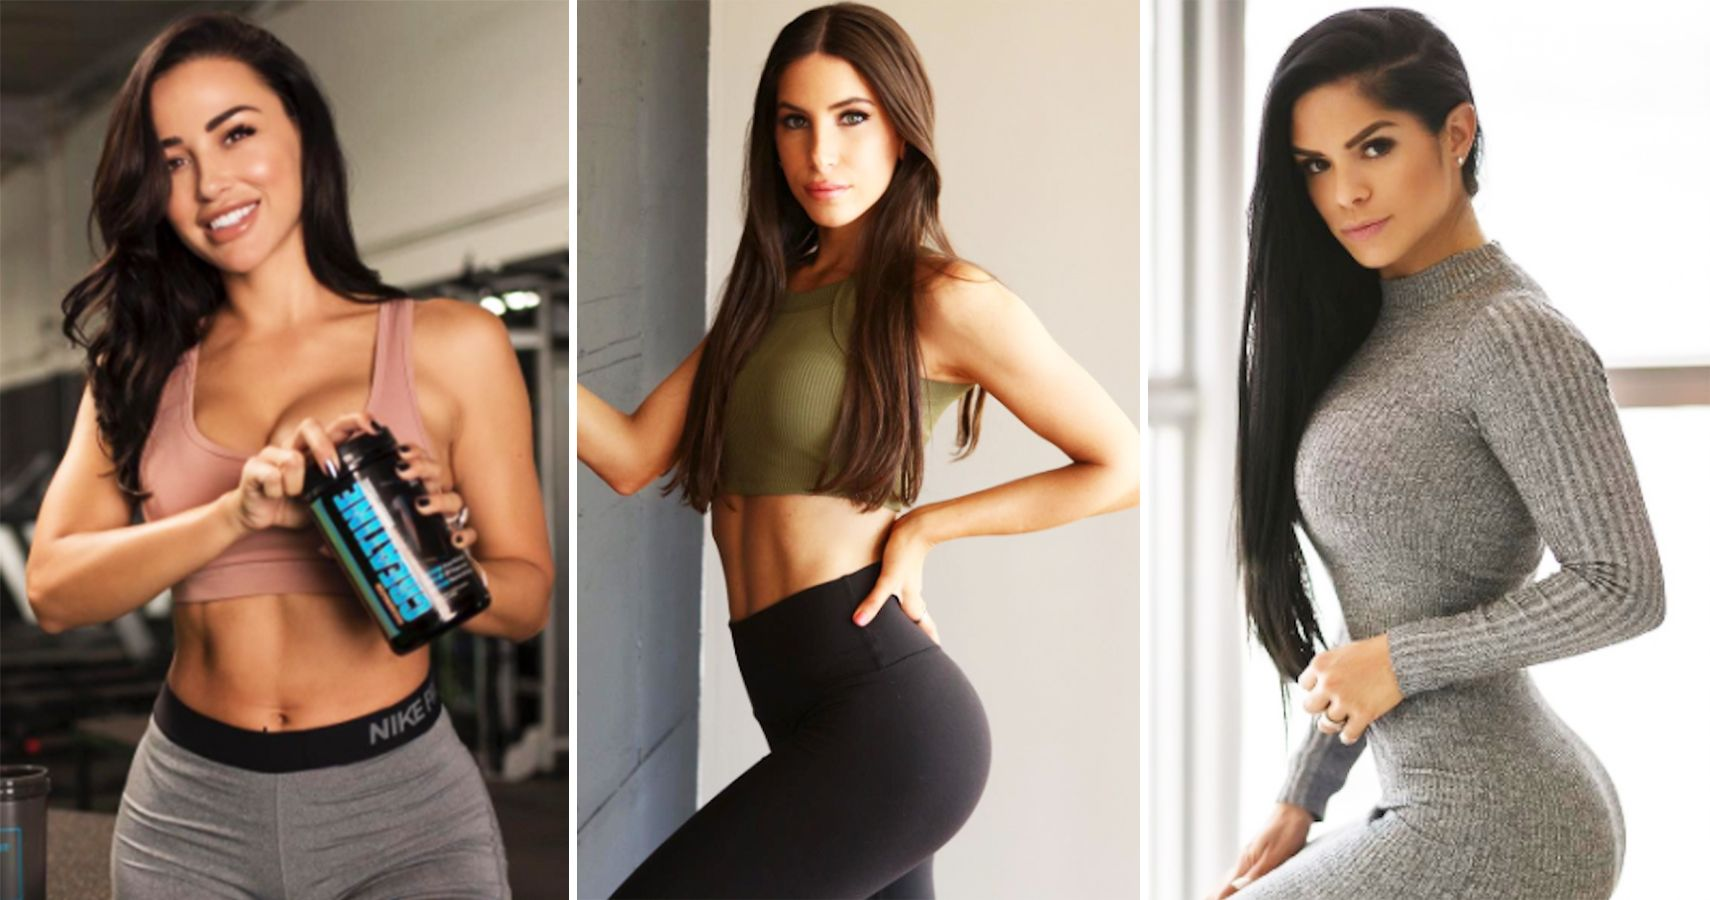 Hot girl with fit body and big boobs Most Stunning Fitness Models That Instagram Has To Offer